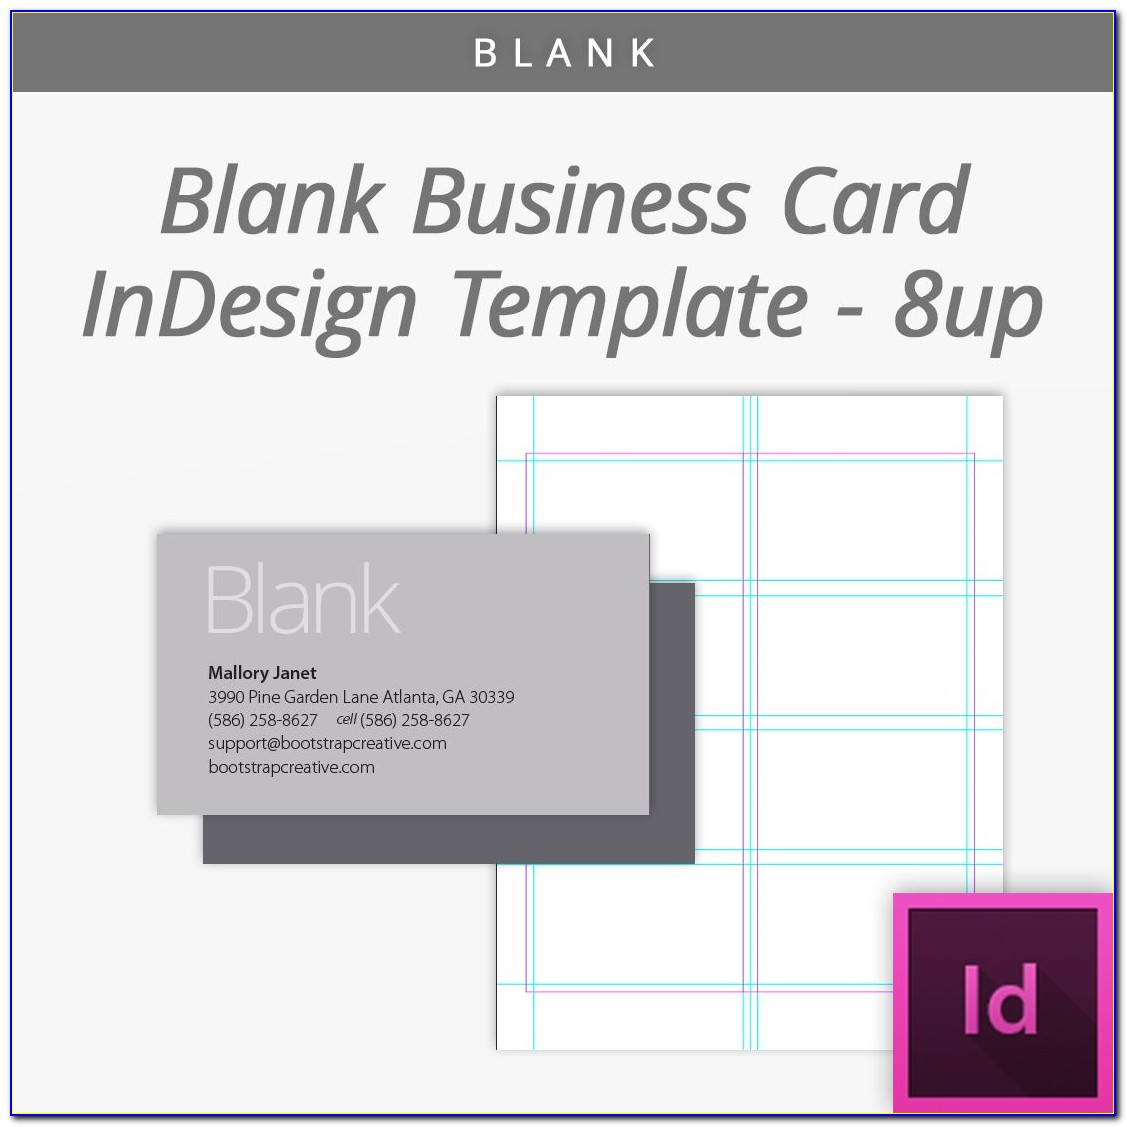 Blank Business Card Template Psd Download